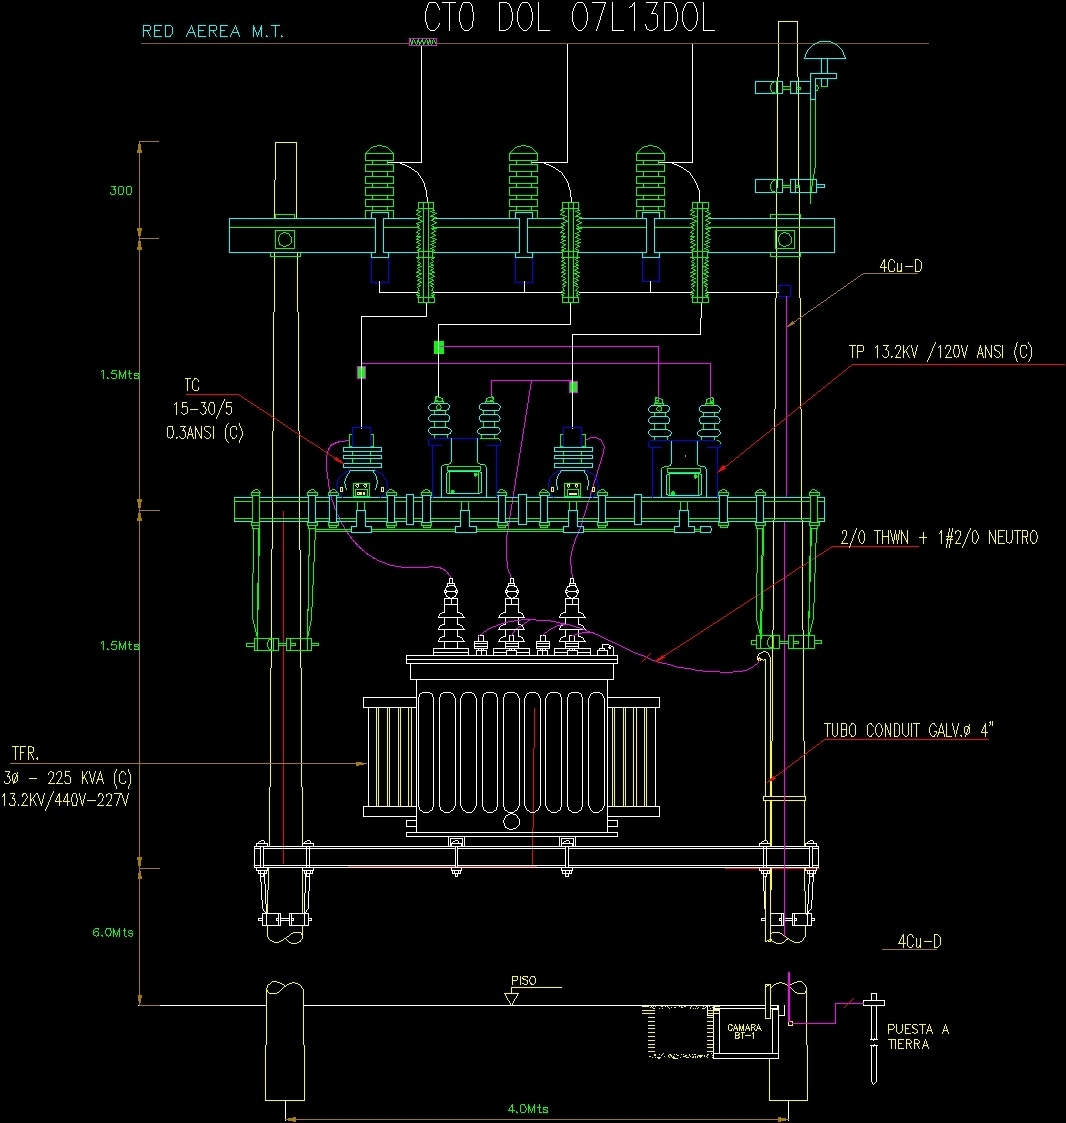 Electric Transformer 440 227v Dwg Block For Autocad Designs Cad Electrical Drawing Additional Screenshots